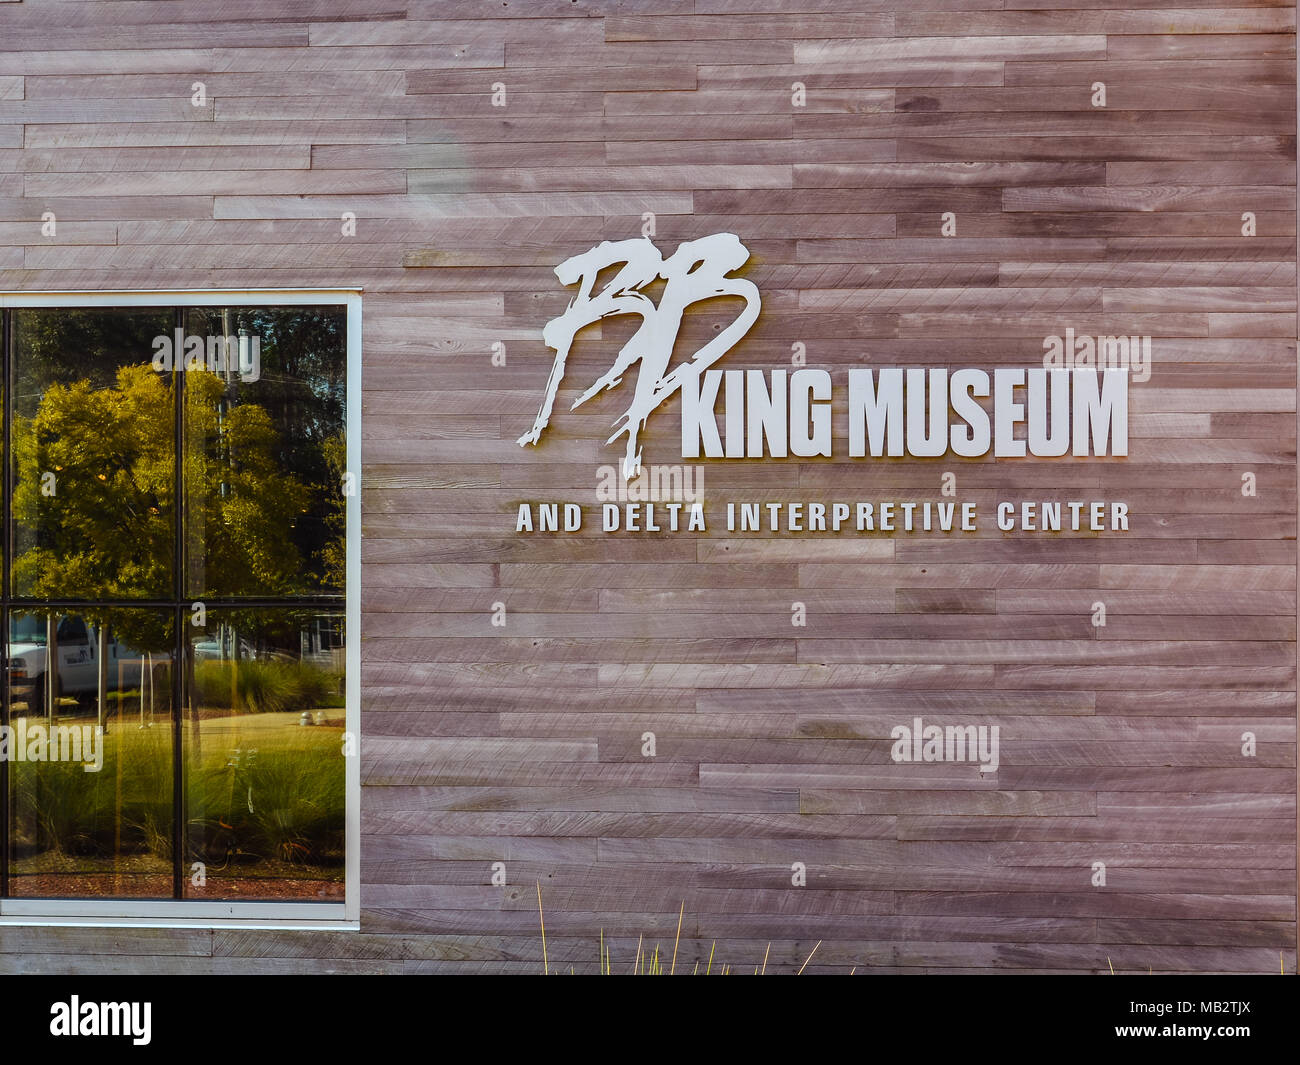 Indianola, MS - Sep. 22, 2017: B.B. King Museum and Delta Interpretive Center. - Stock Image